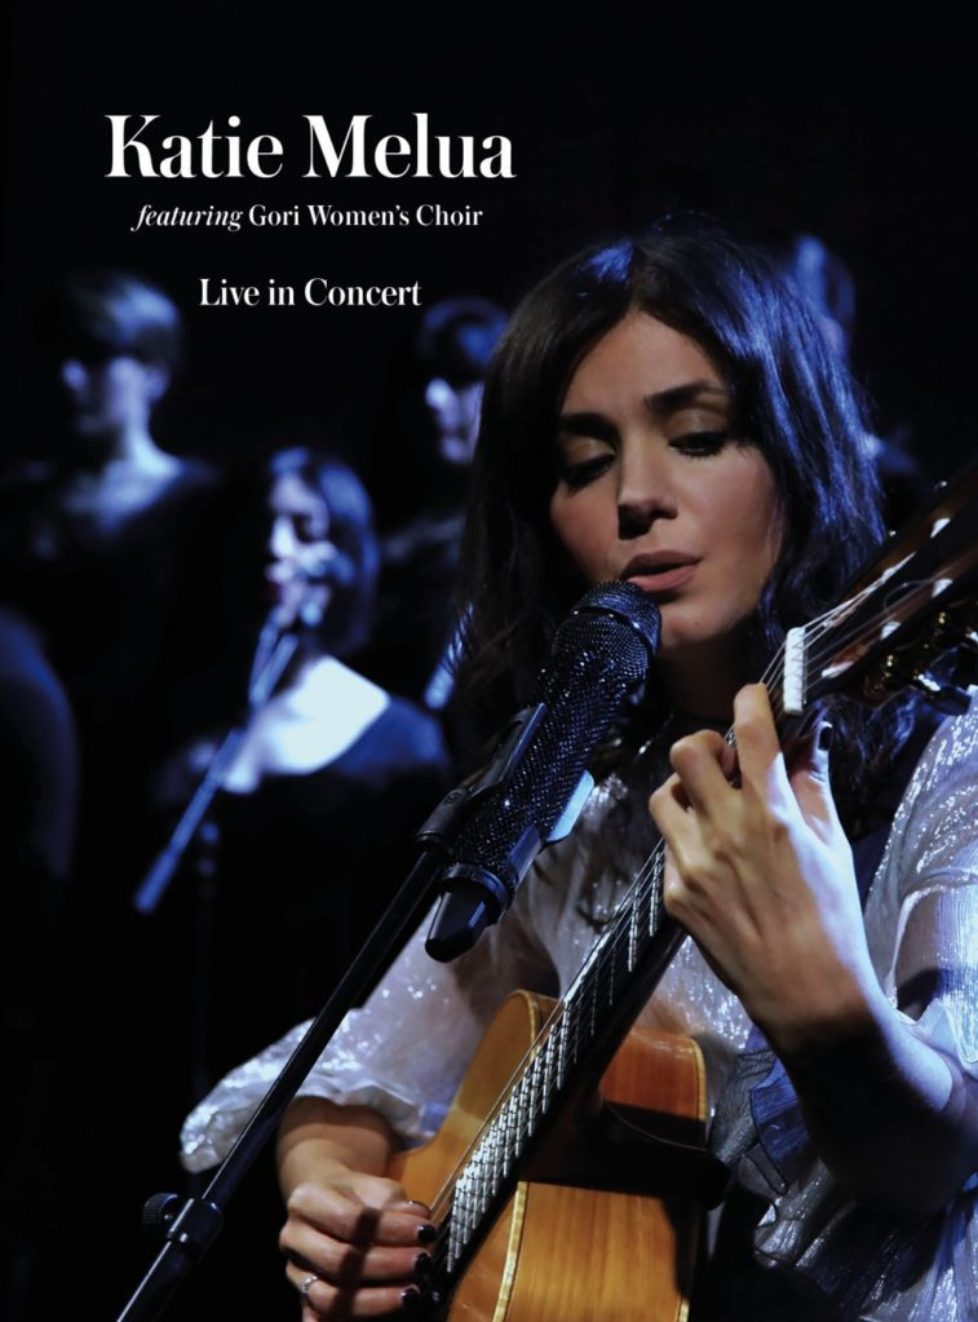 Katie-Melua-Live-In-Concert-Book-Artwork-1000px